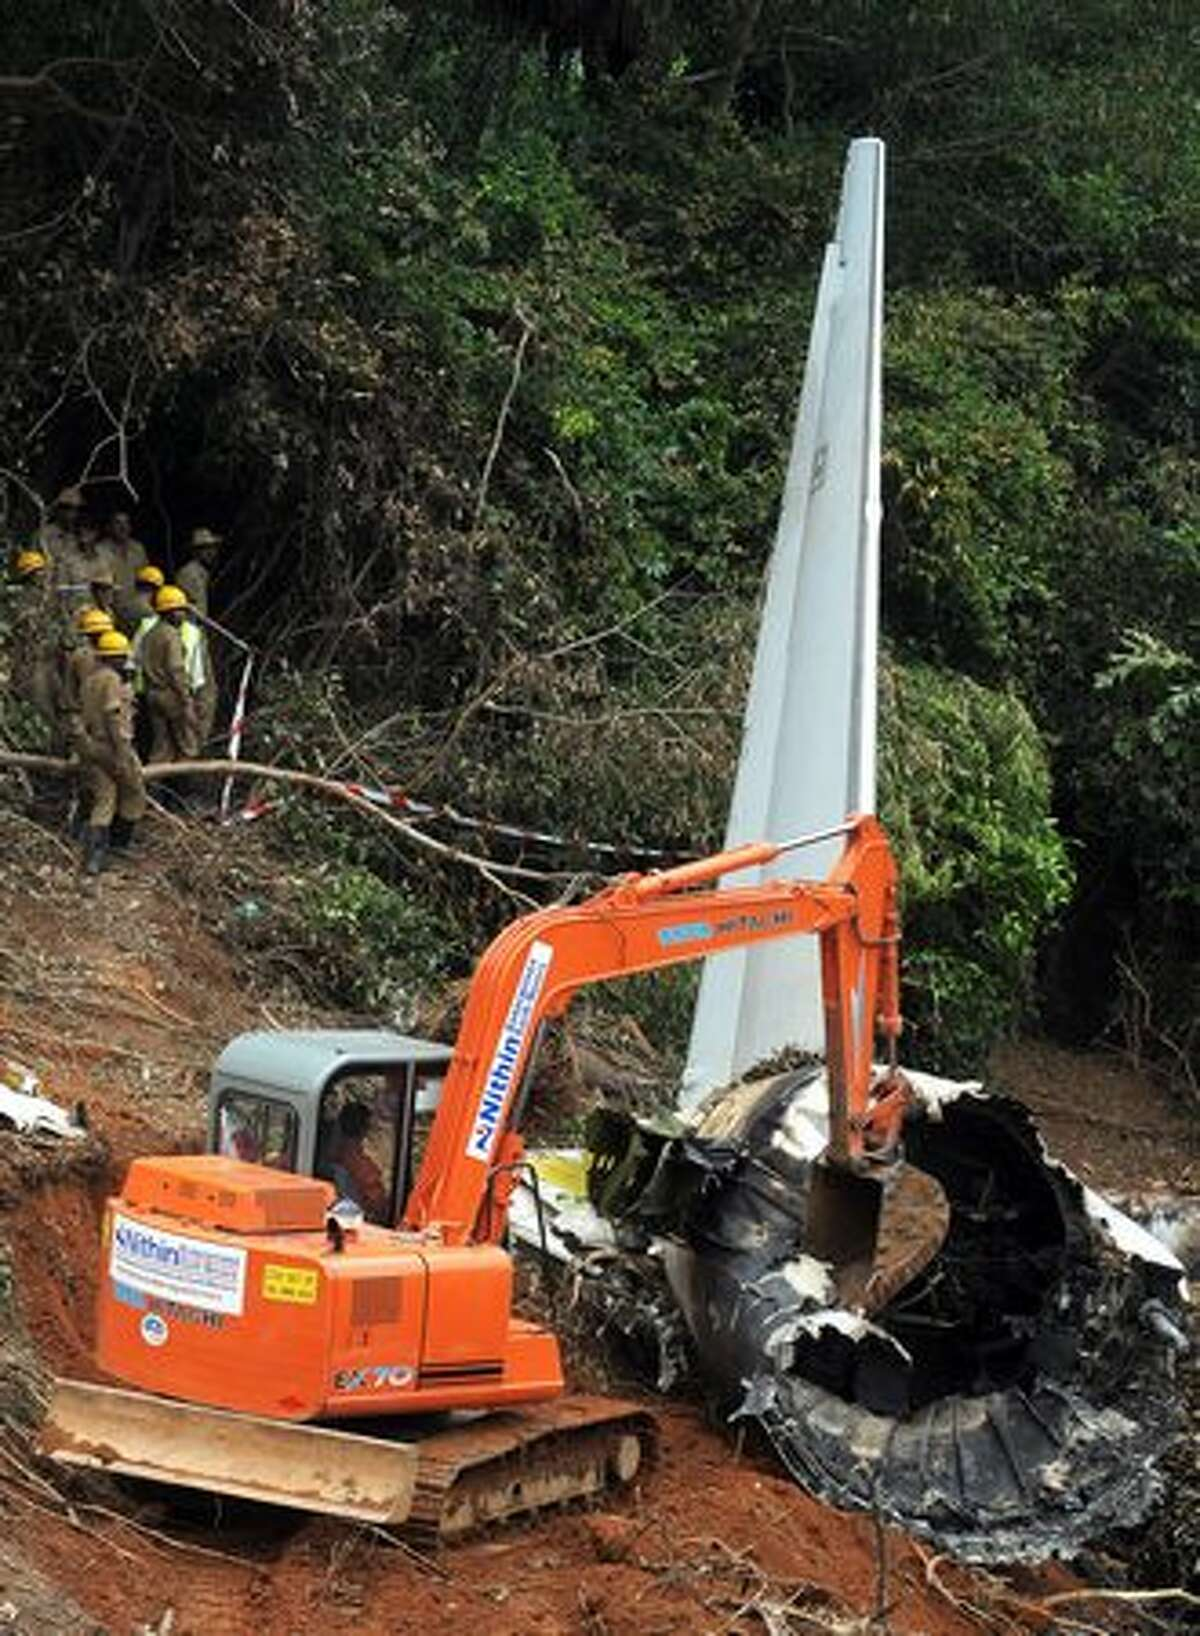 An earth mover removes debris at the plane crash site of the Air India Express Boeing 737-800 in Mangalore. Investigators combed the wreckage of an Air India Express jet that crashed into a forested gorge with the loss of 158 lives, searching for the